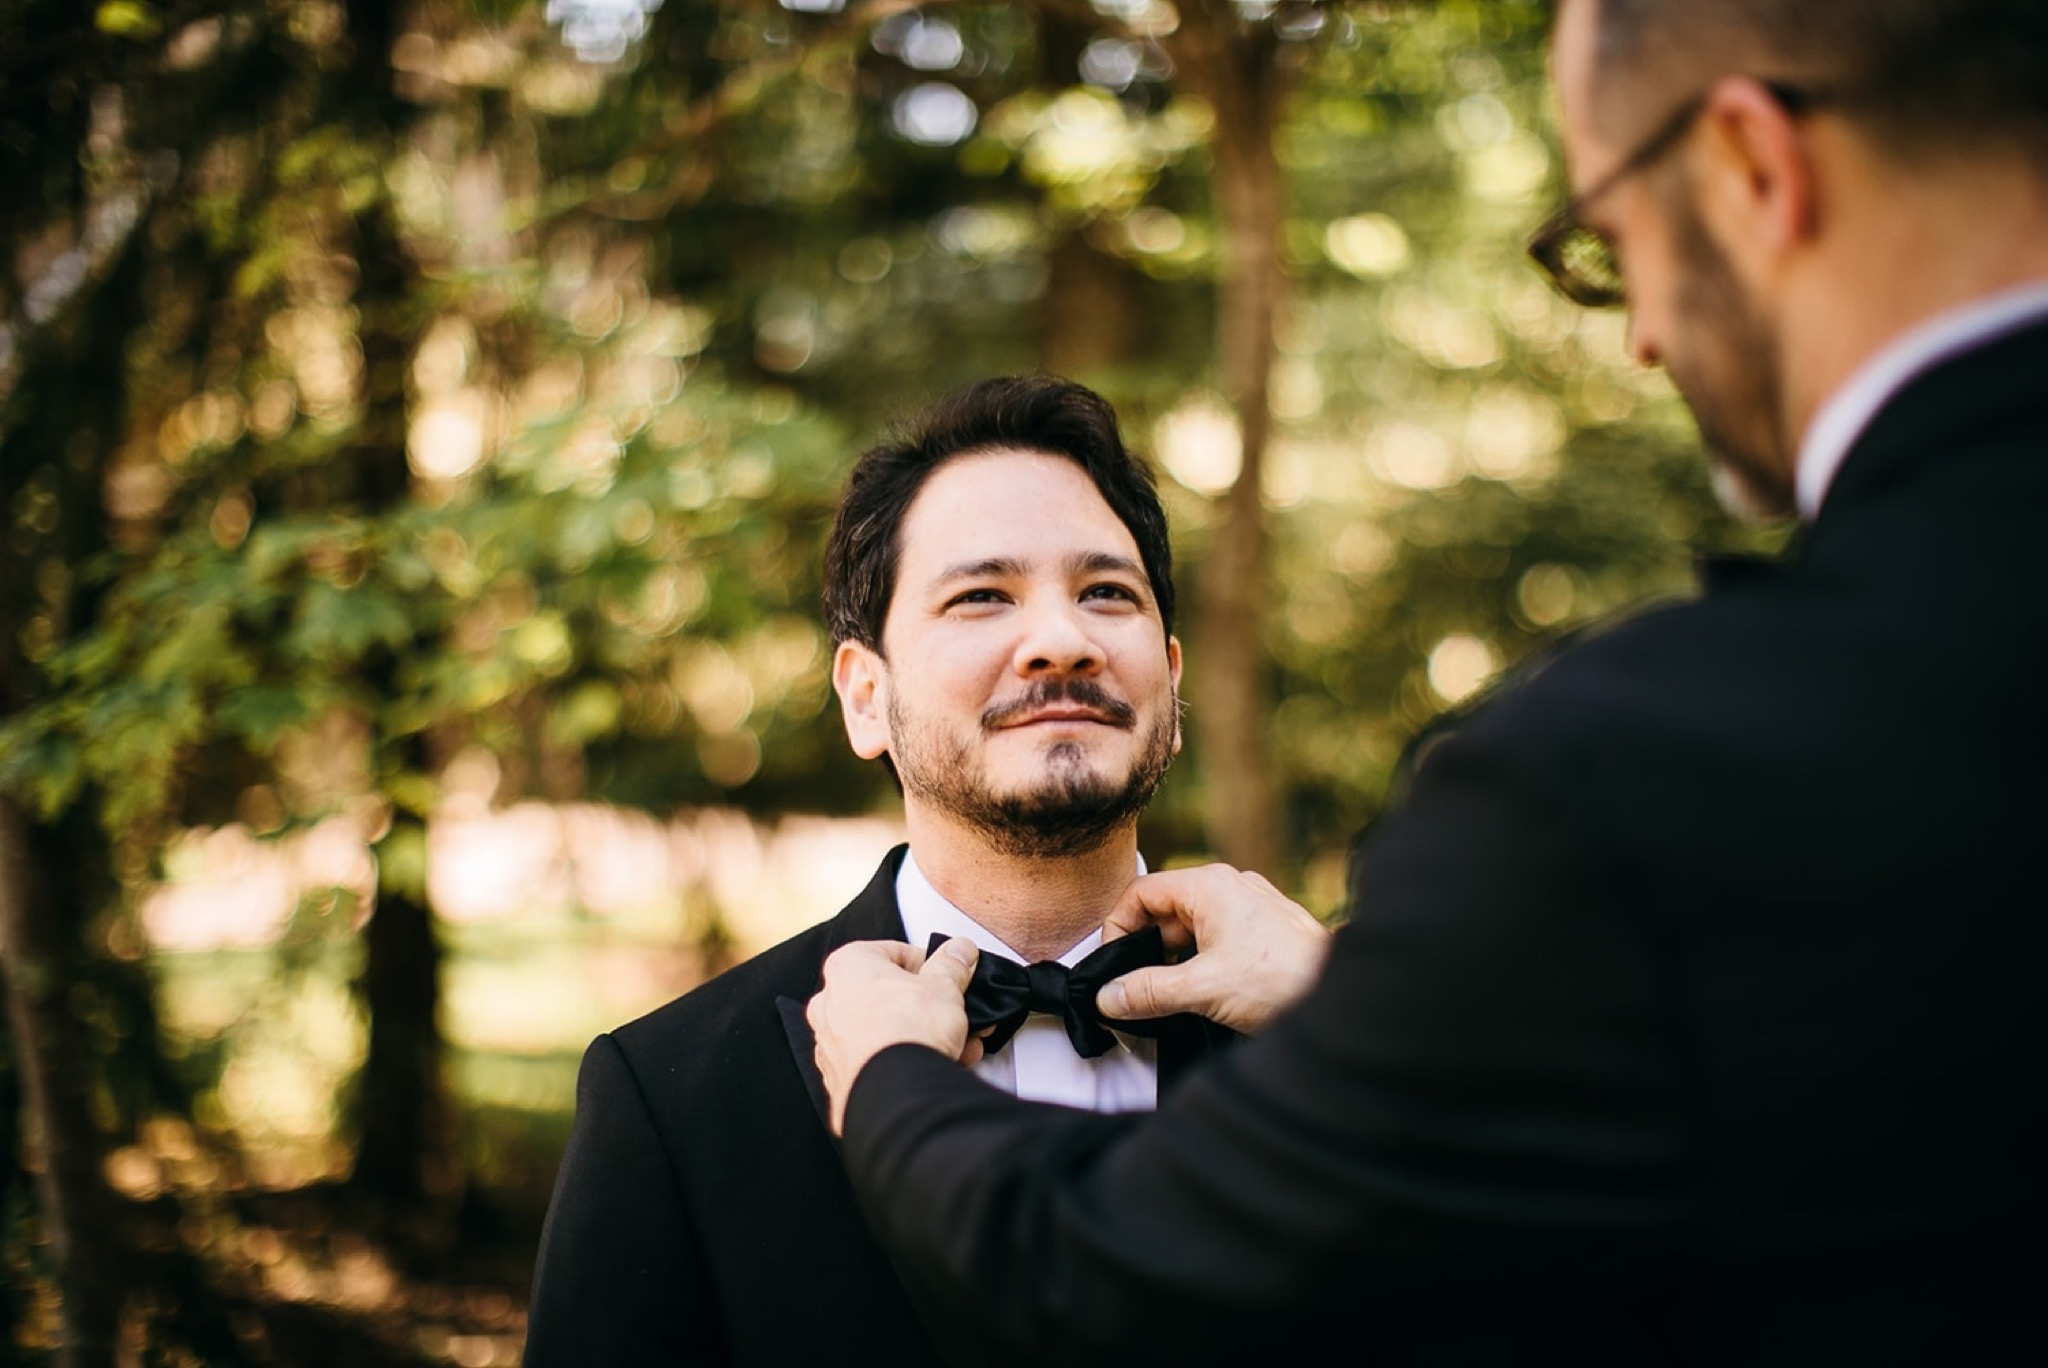 a man helps straighten the black bowtie his friend is wearing